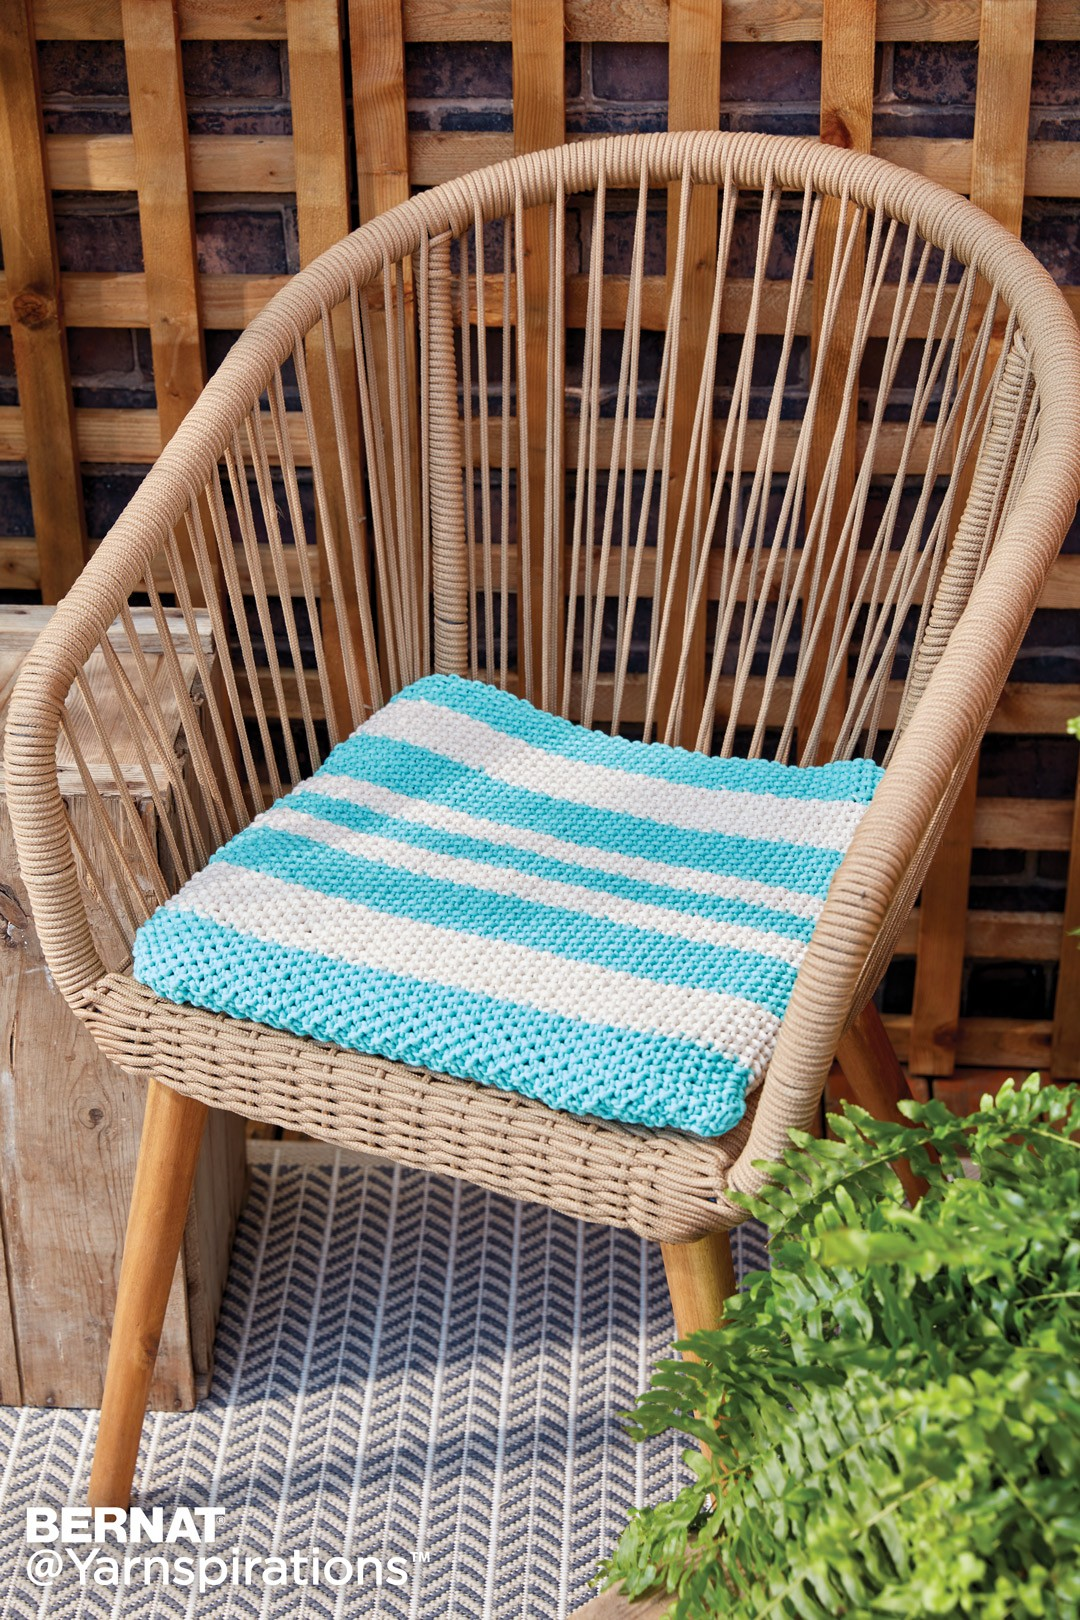 Bernat Knit Seat Cushion